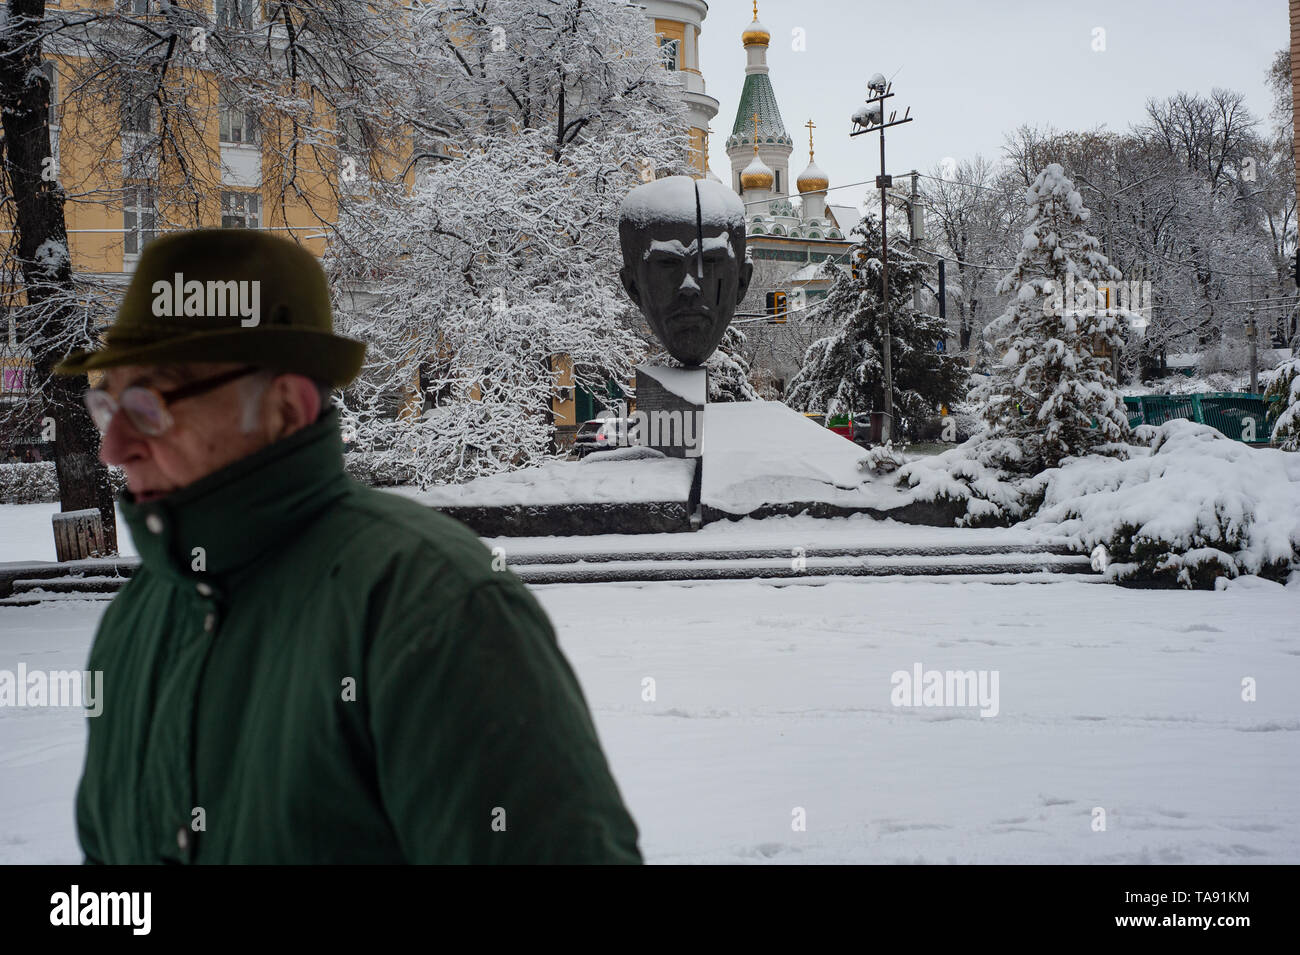 An Old Bulgarian man walks past the Stefan Stambolov Monument, in the snow of Crystal Park, Sofia, Bulgaria, Europe - Stock Image